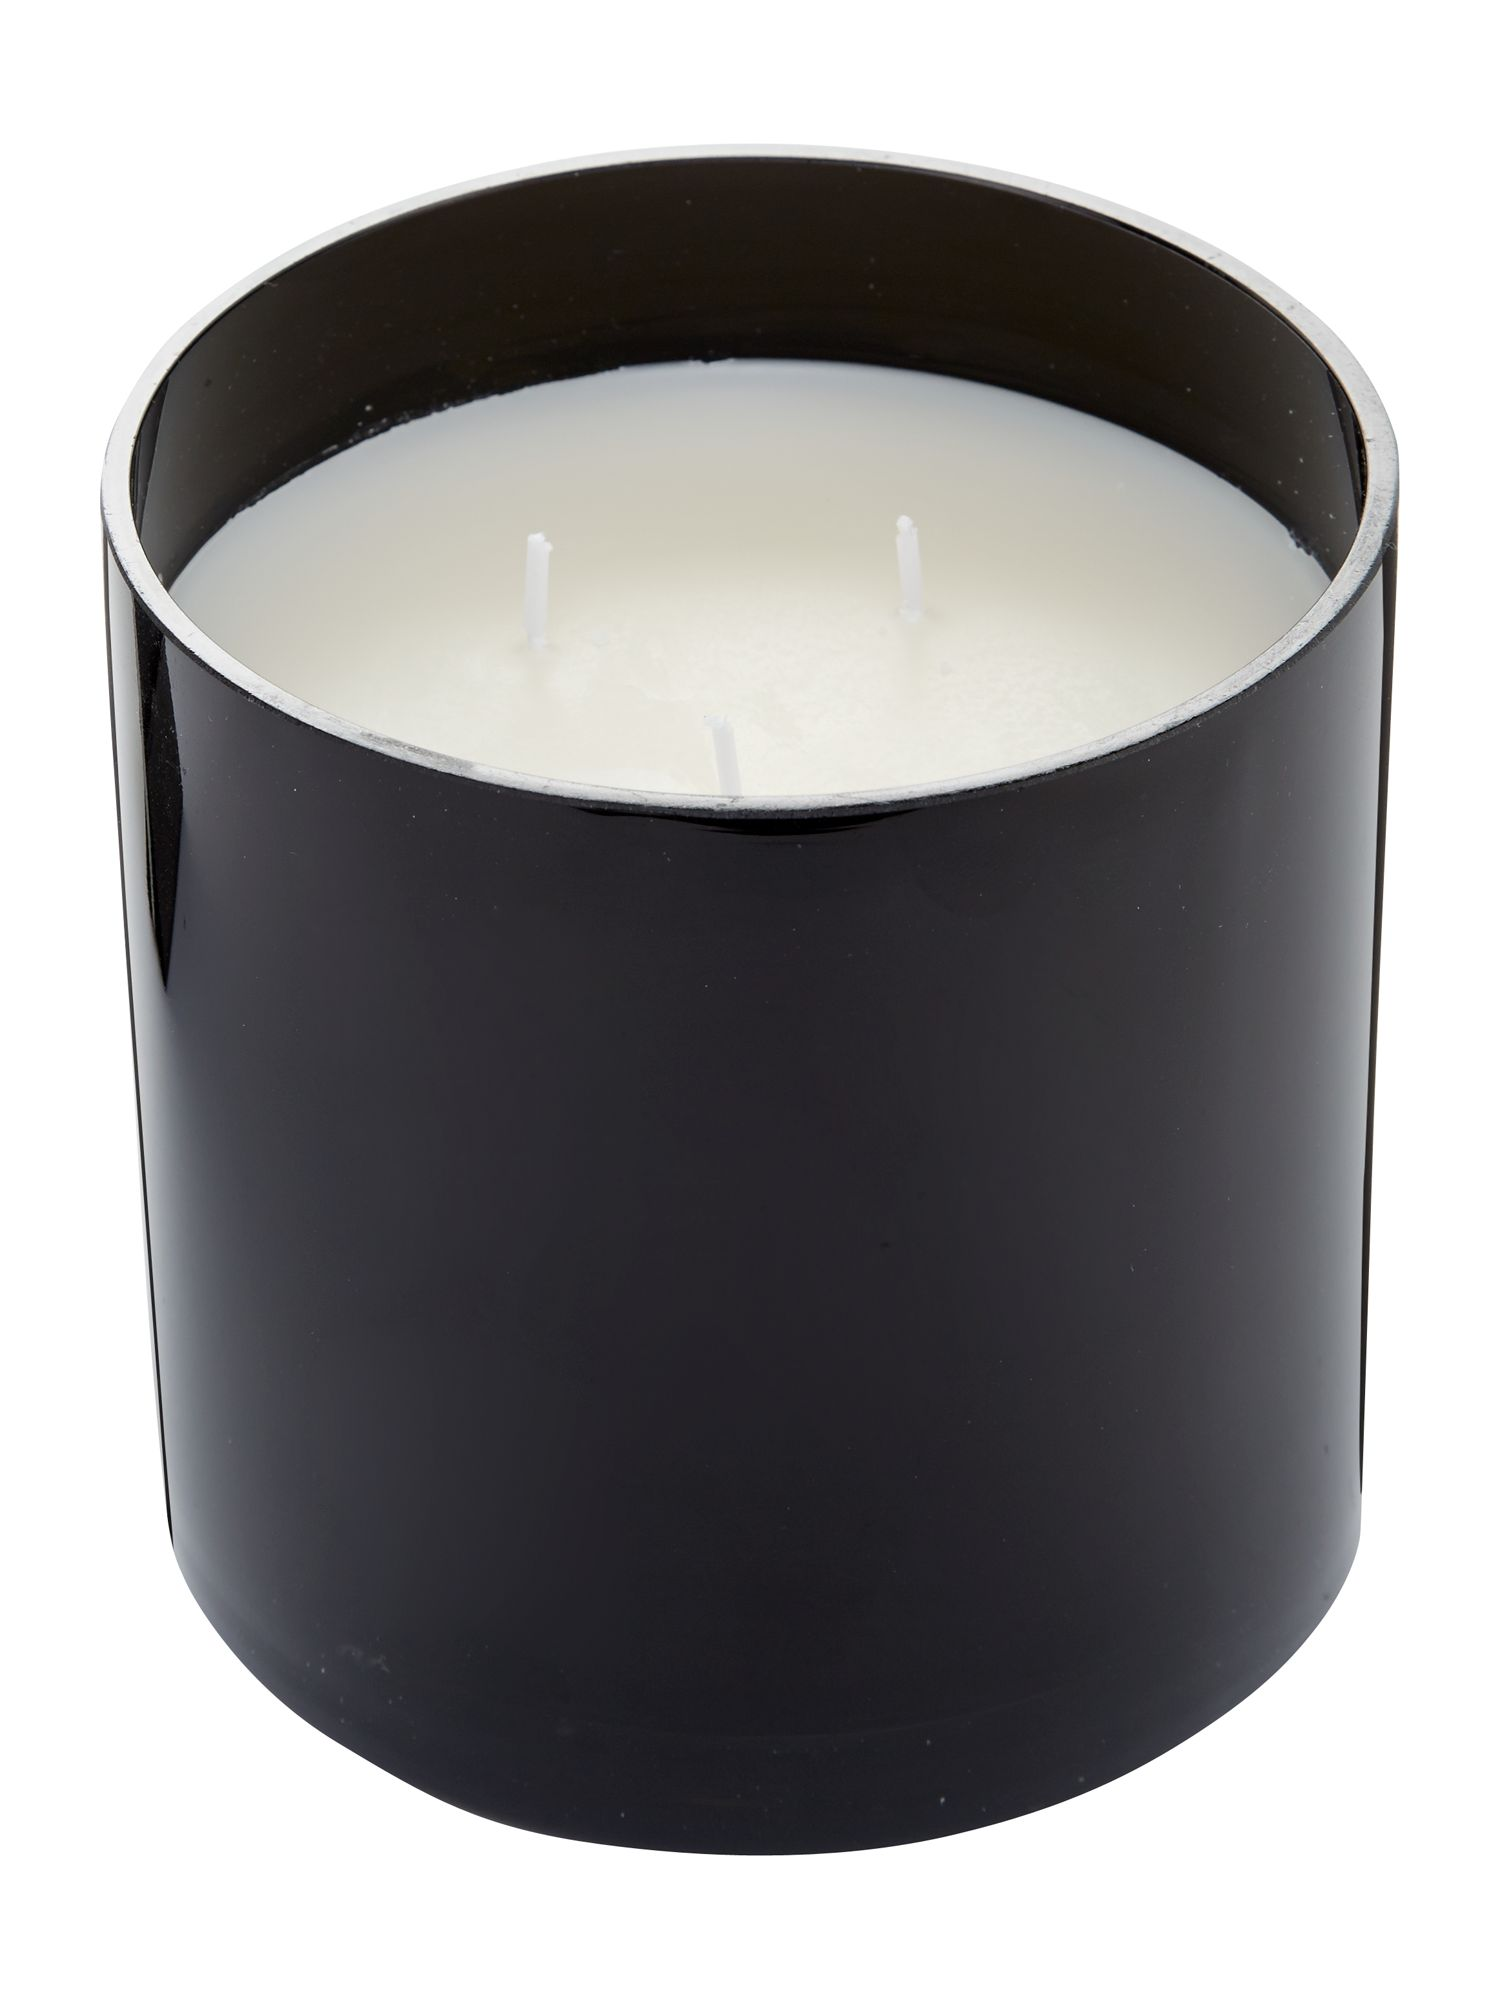 Peach & orchid bloom large candle